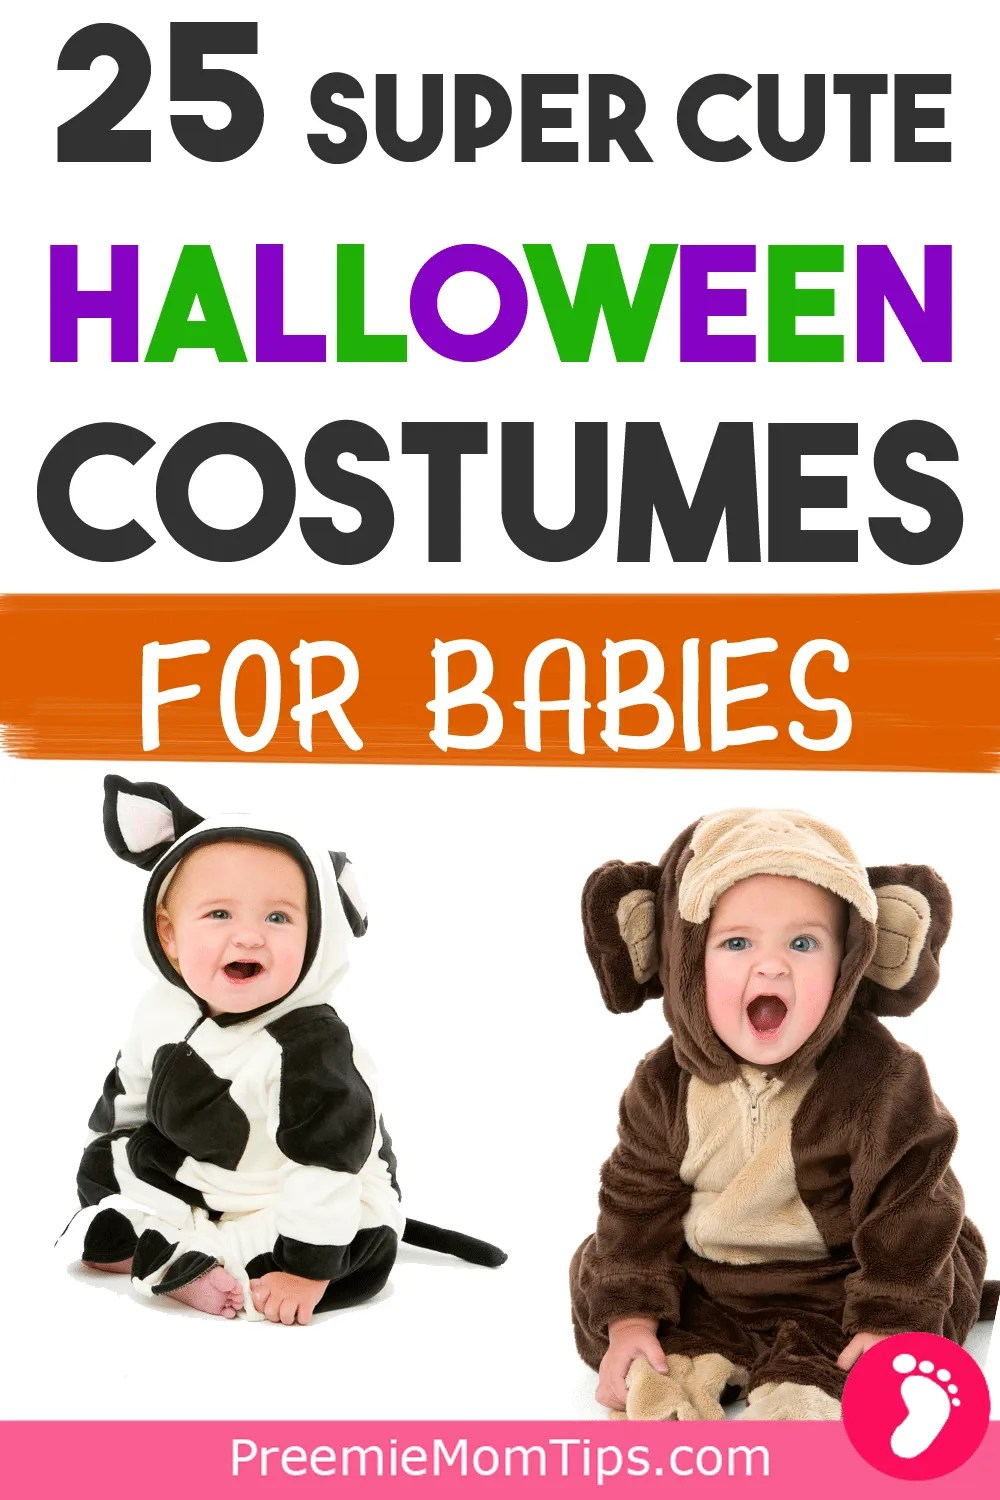 Check out my top picks for the best Halloween costumes for babies! Celebrate your baby's first Halloween by dressing him or her in one of these super adorable Halloween outfits!